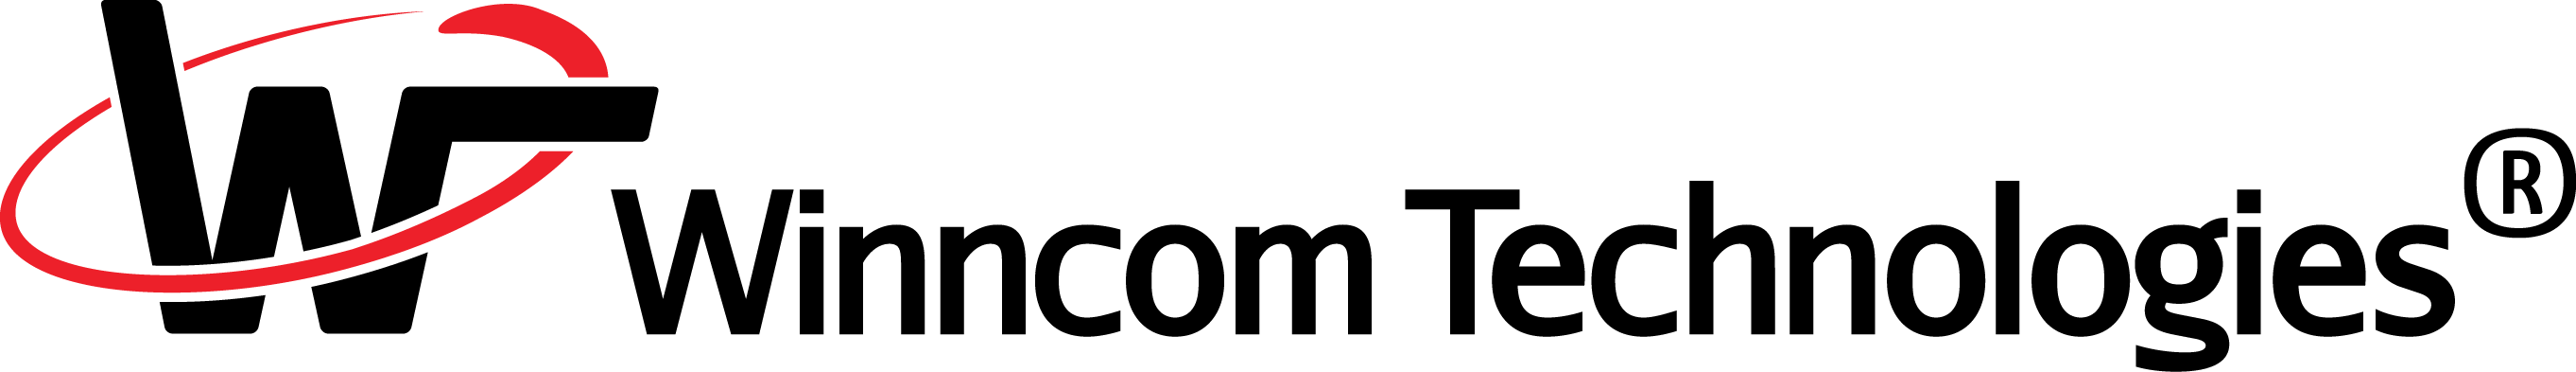 winncom_logo_original